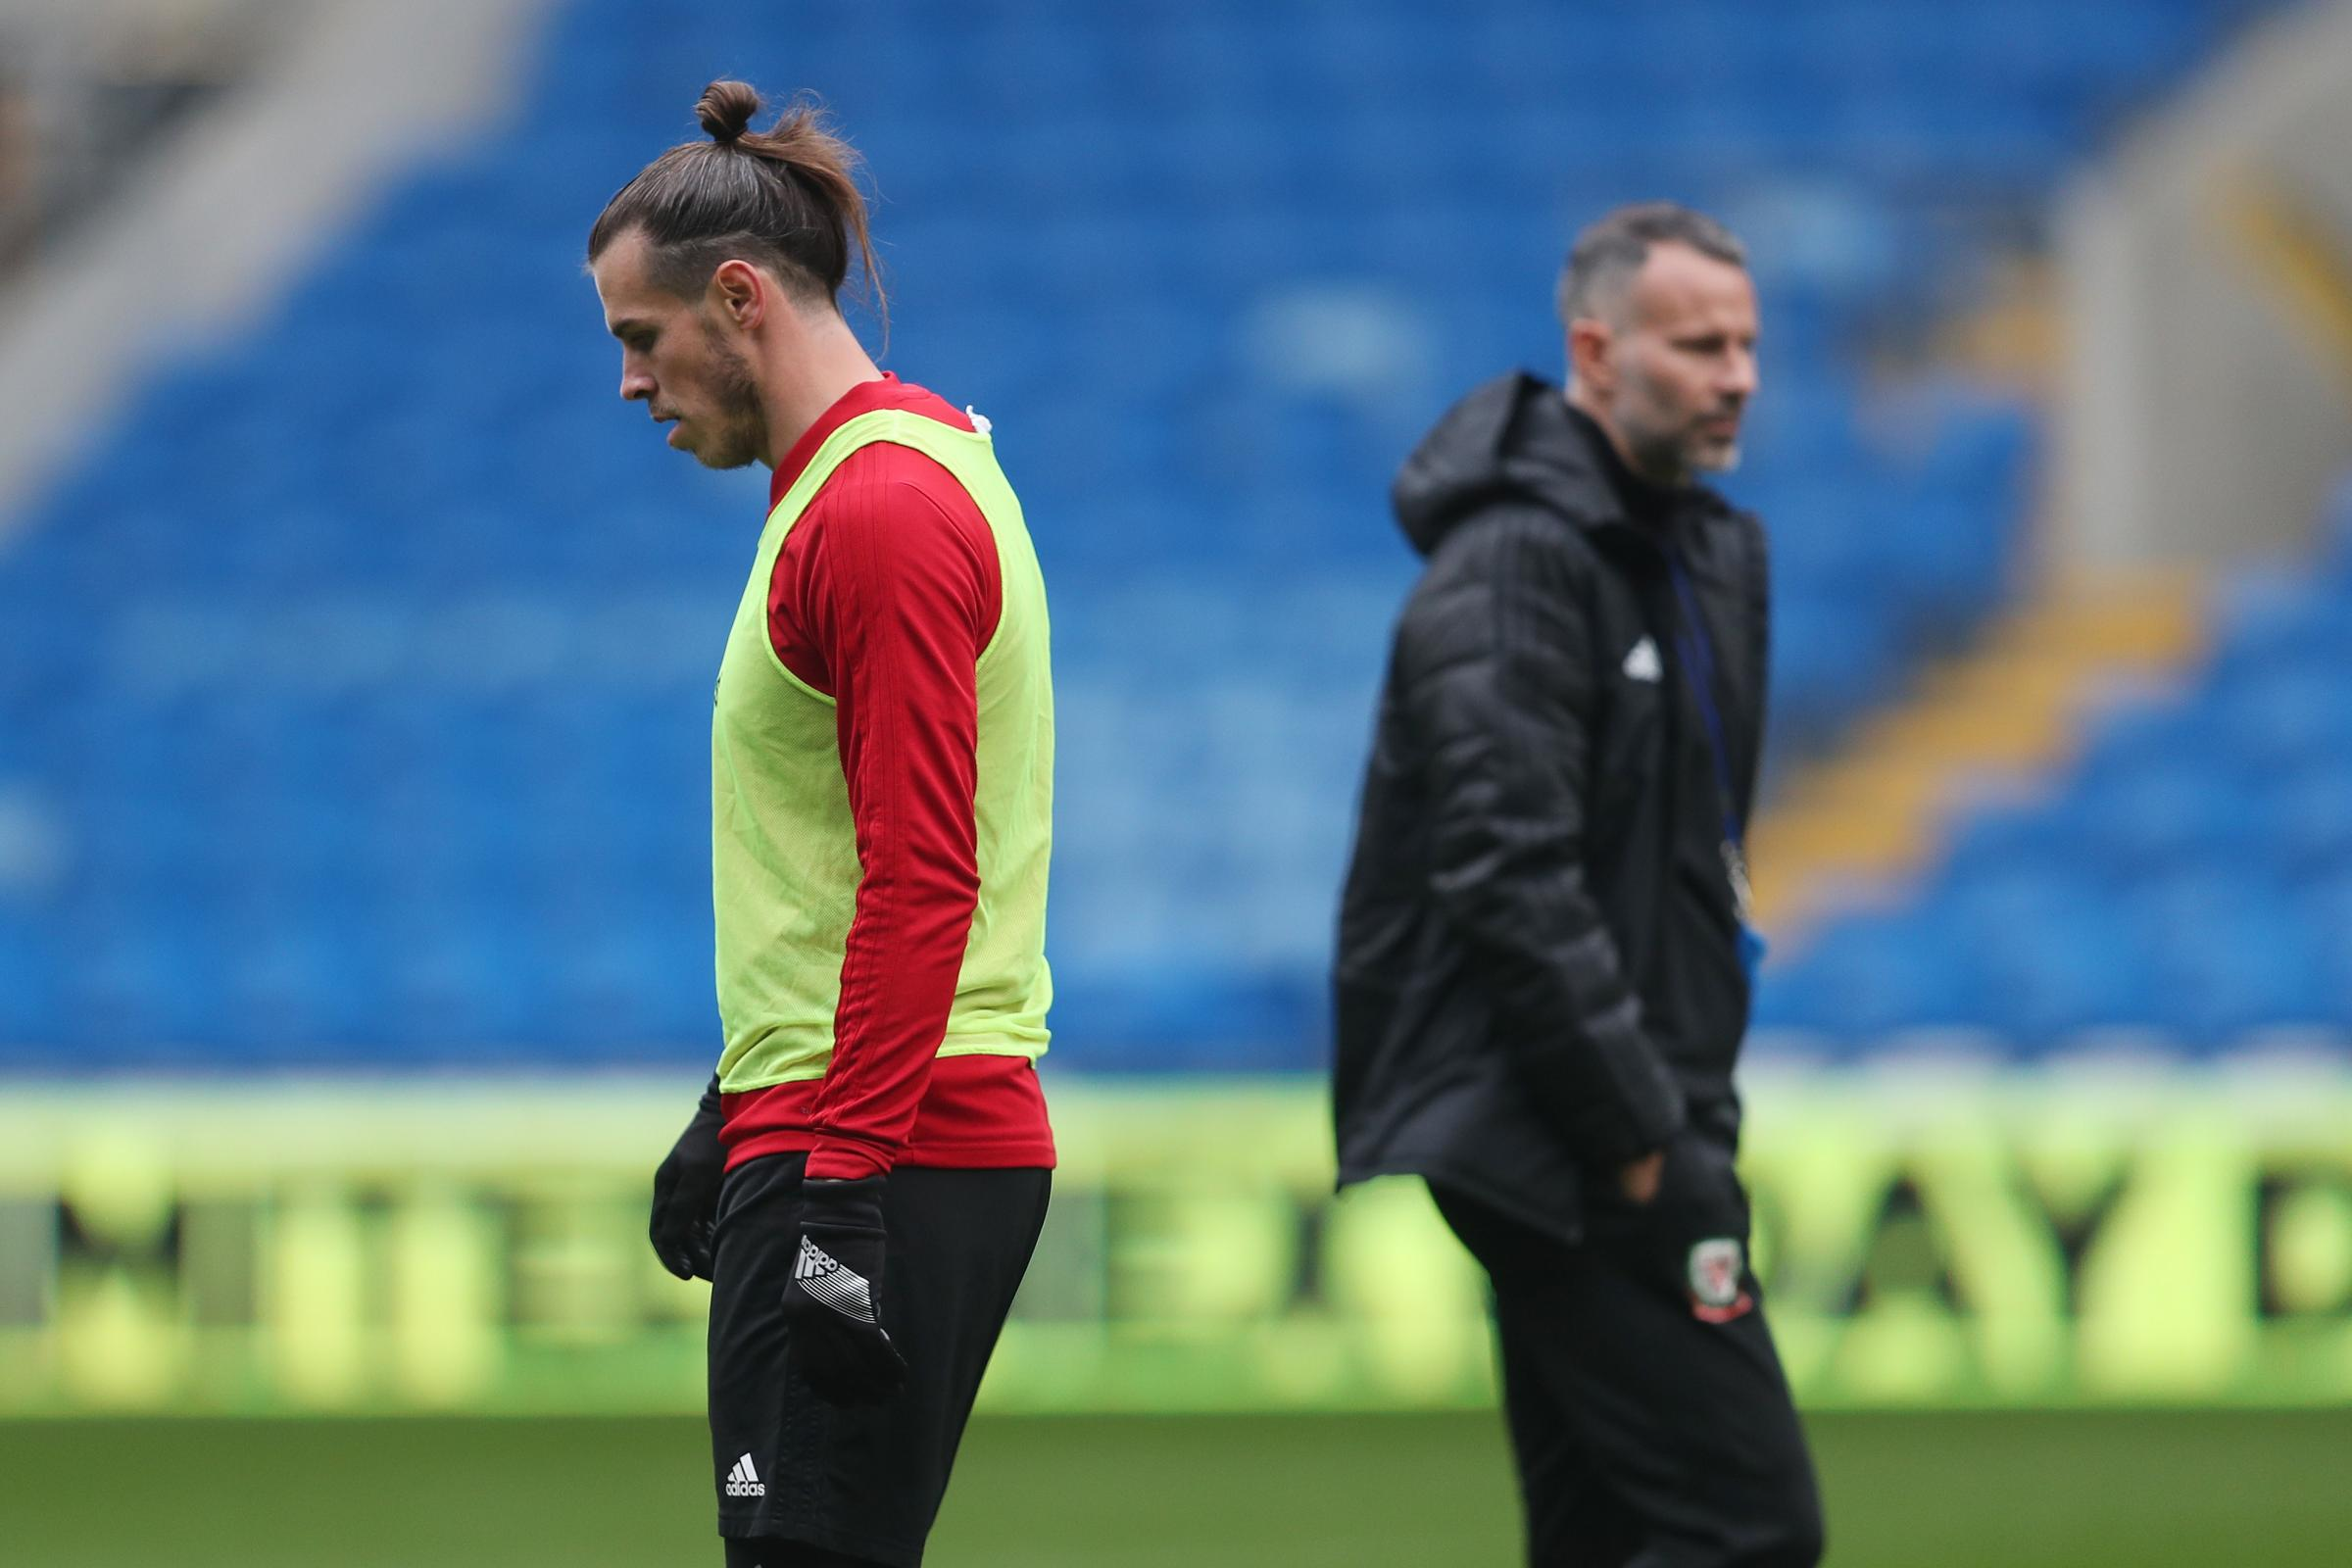 Wales manager Ryan Giggs (right) wants to take the pressure off his star man Gareth Bale (left) heading into the European Championship qualifiers